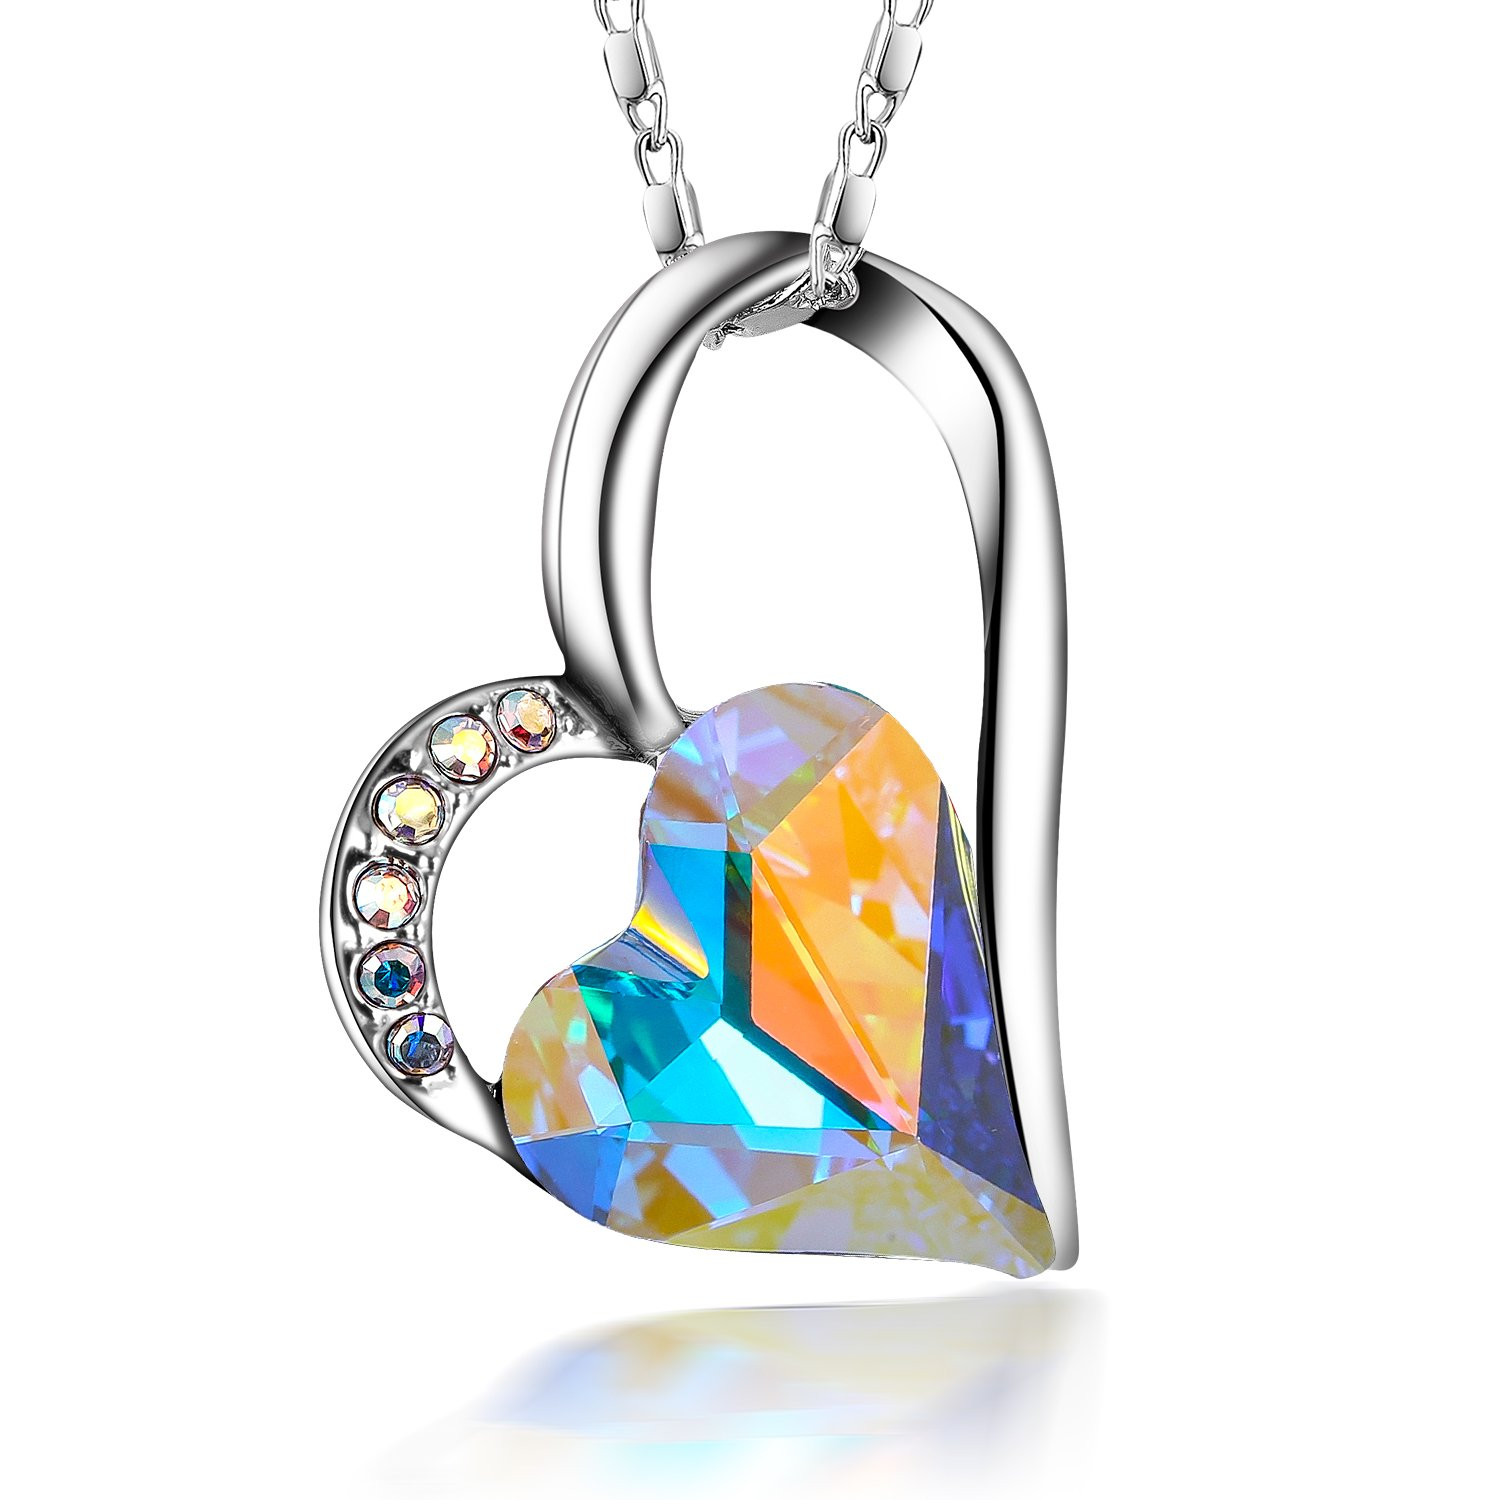 cb47a209a Galleon - SIVERY Eternal Love' Women Heart Necklace With Silver Swarovski  Crystal, Jewelry For Women